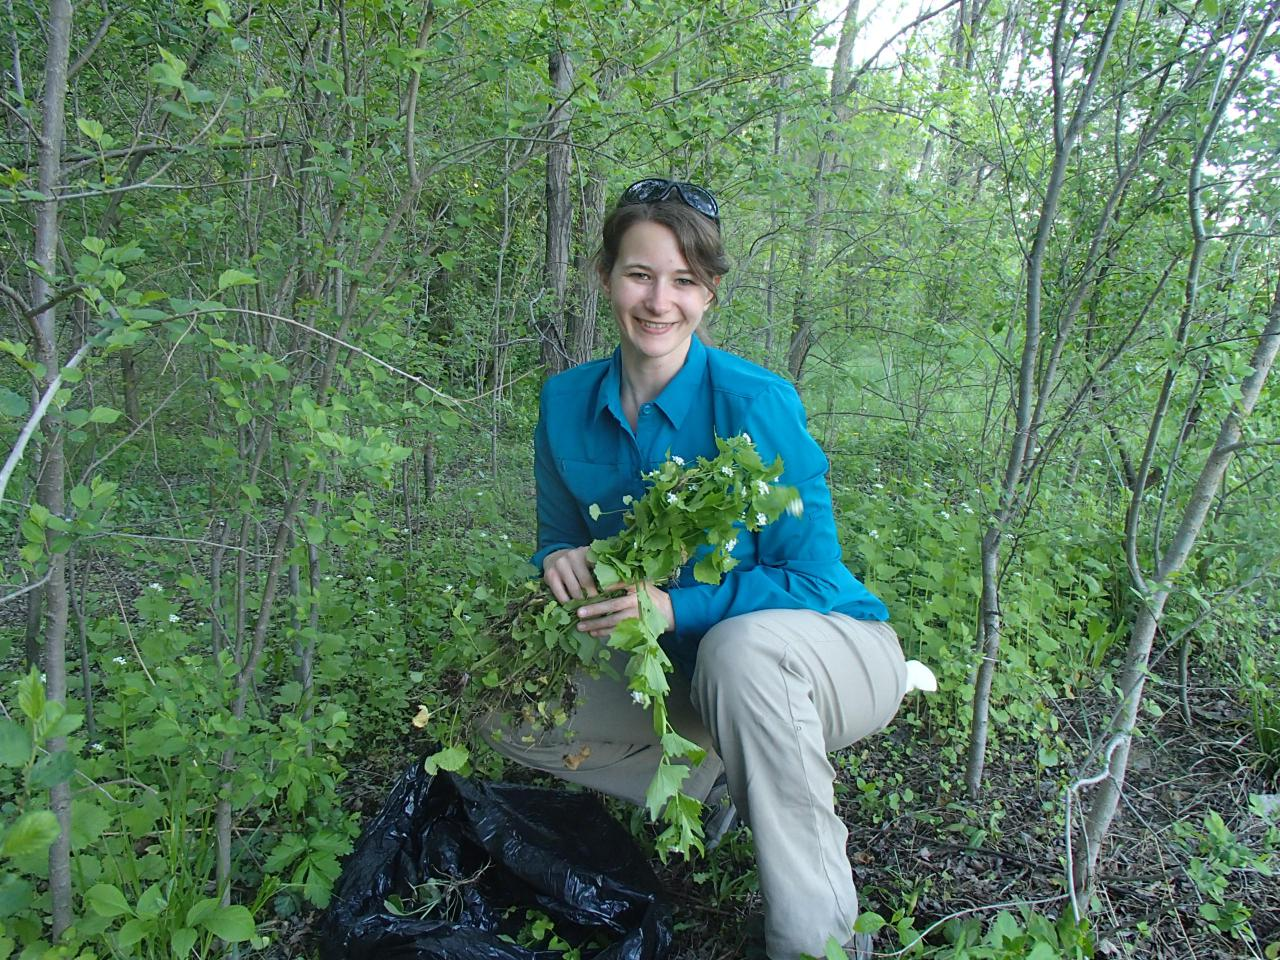 Volunteers can expect to fill many trash bags with garlic mustard at this event!